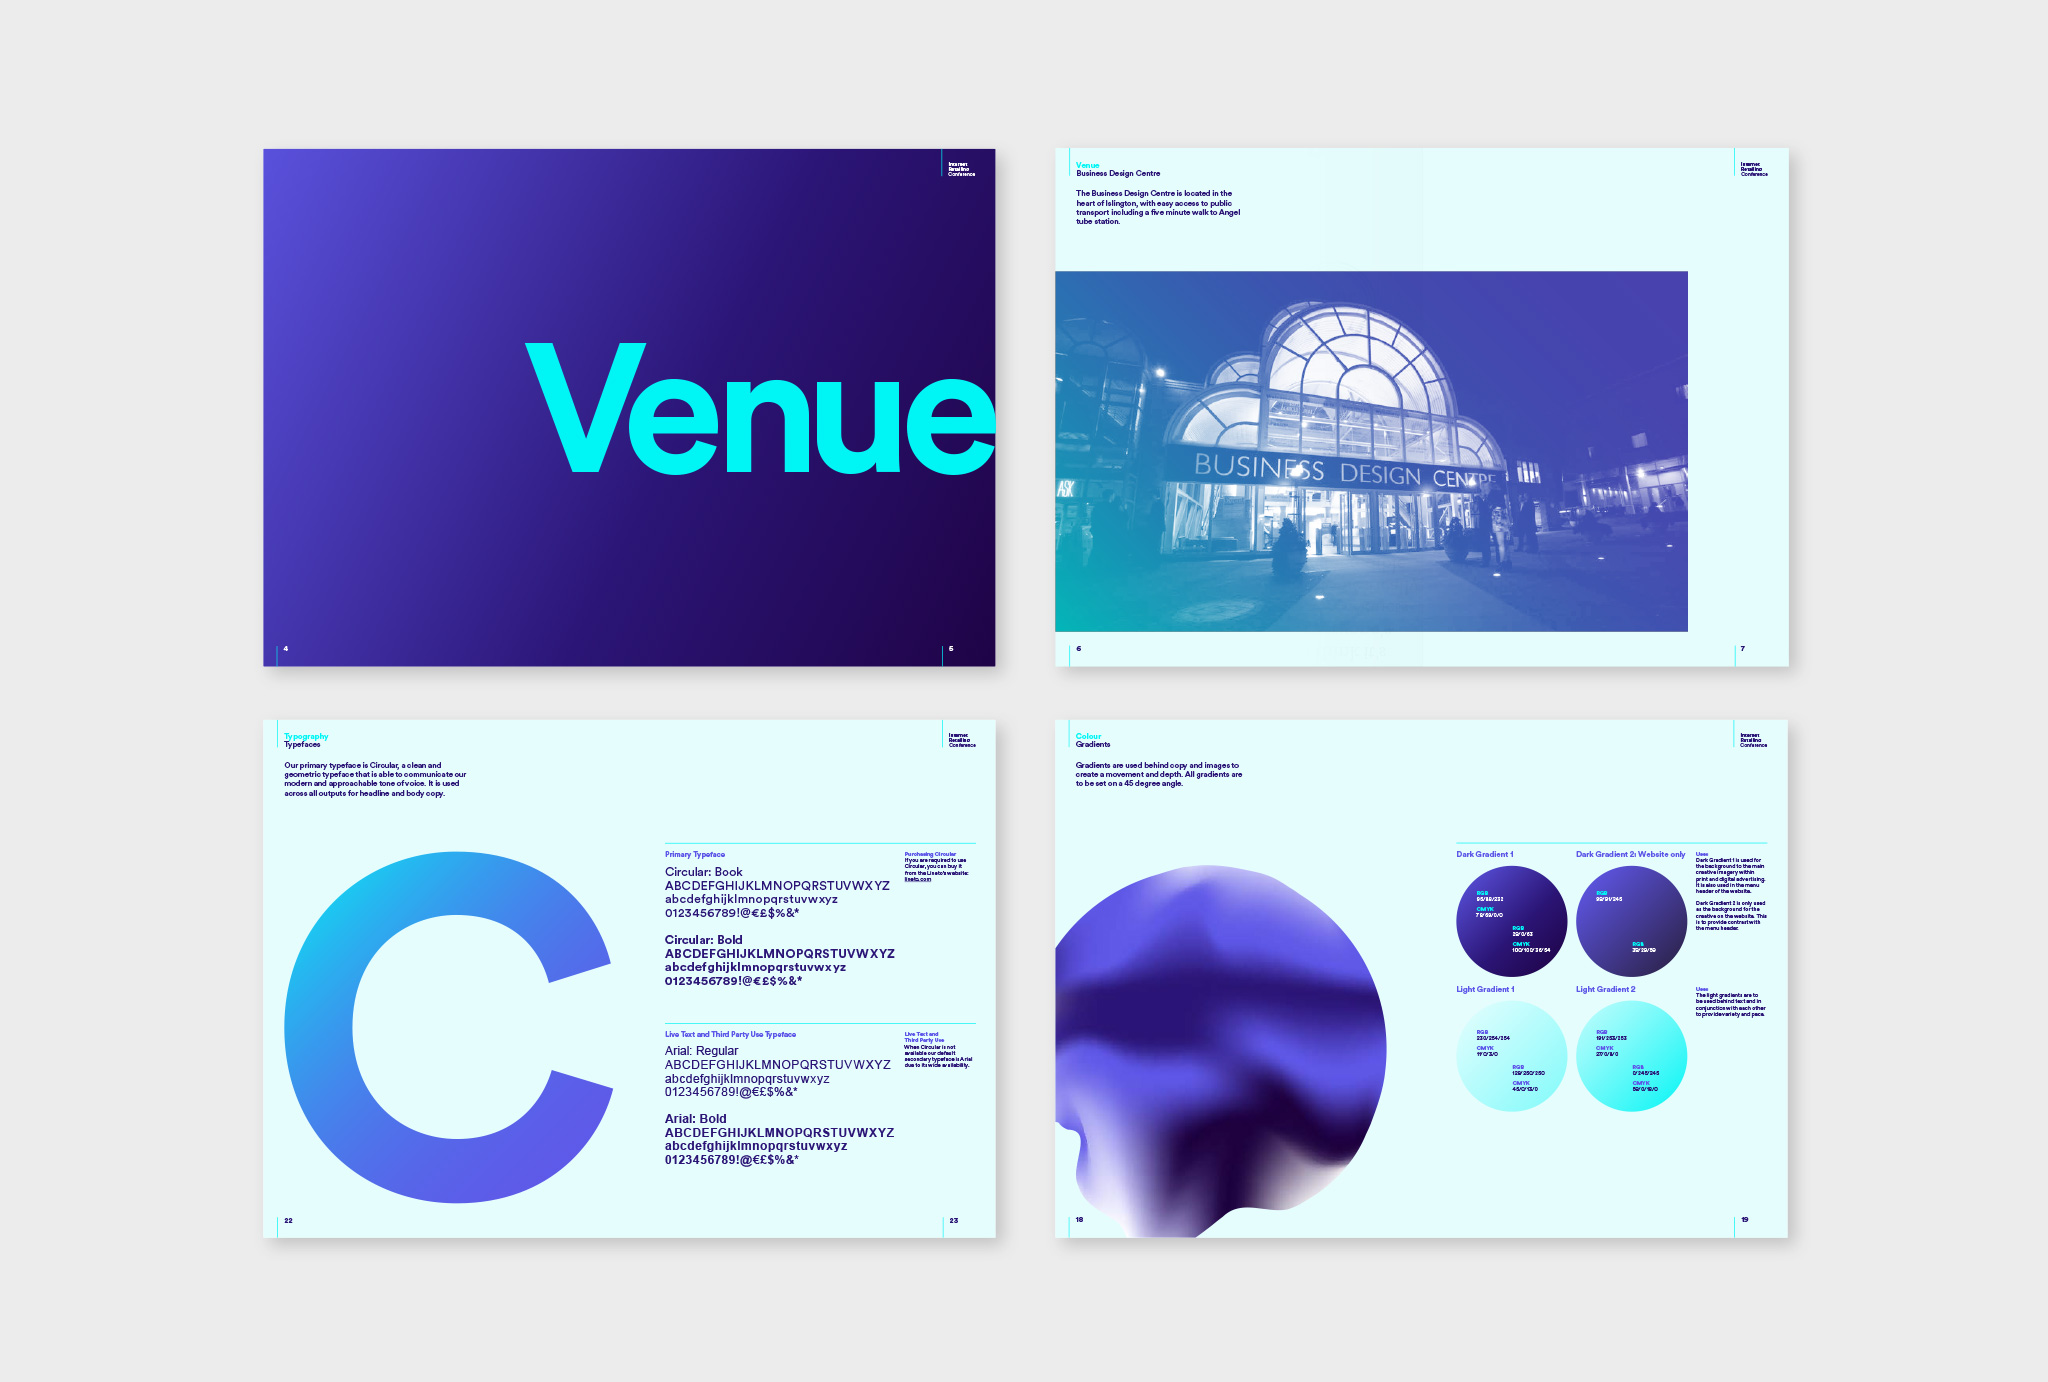 colour brand guidelines in turquoise and blue shades